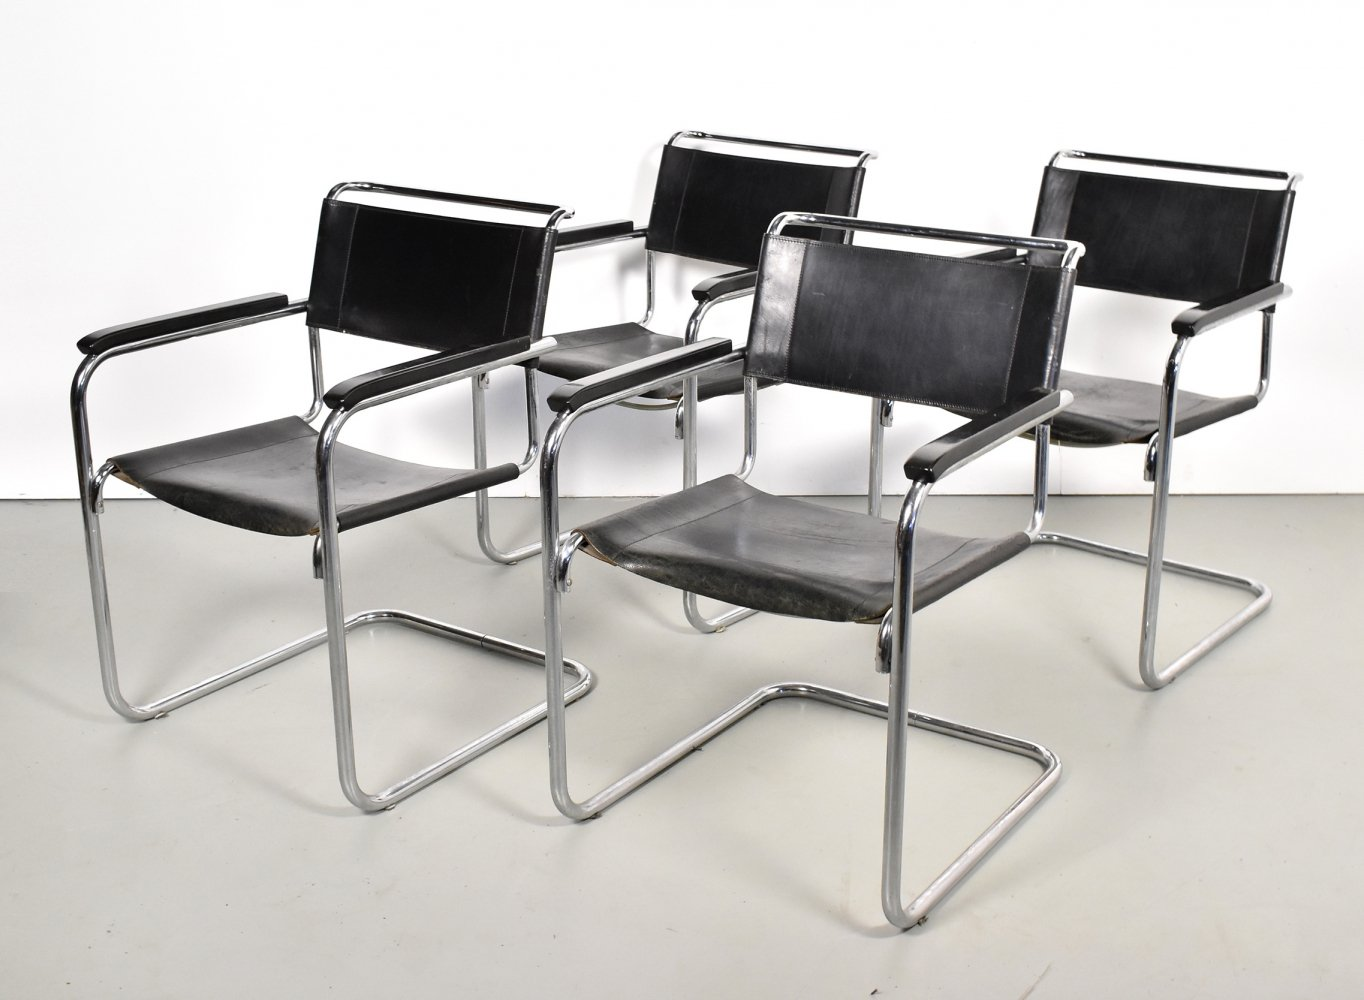 Set of 4 S34 dining chairs by Mart Stam for Thonet, 1960s